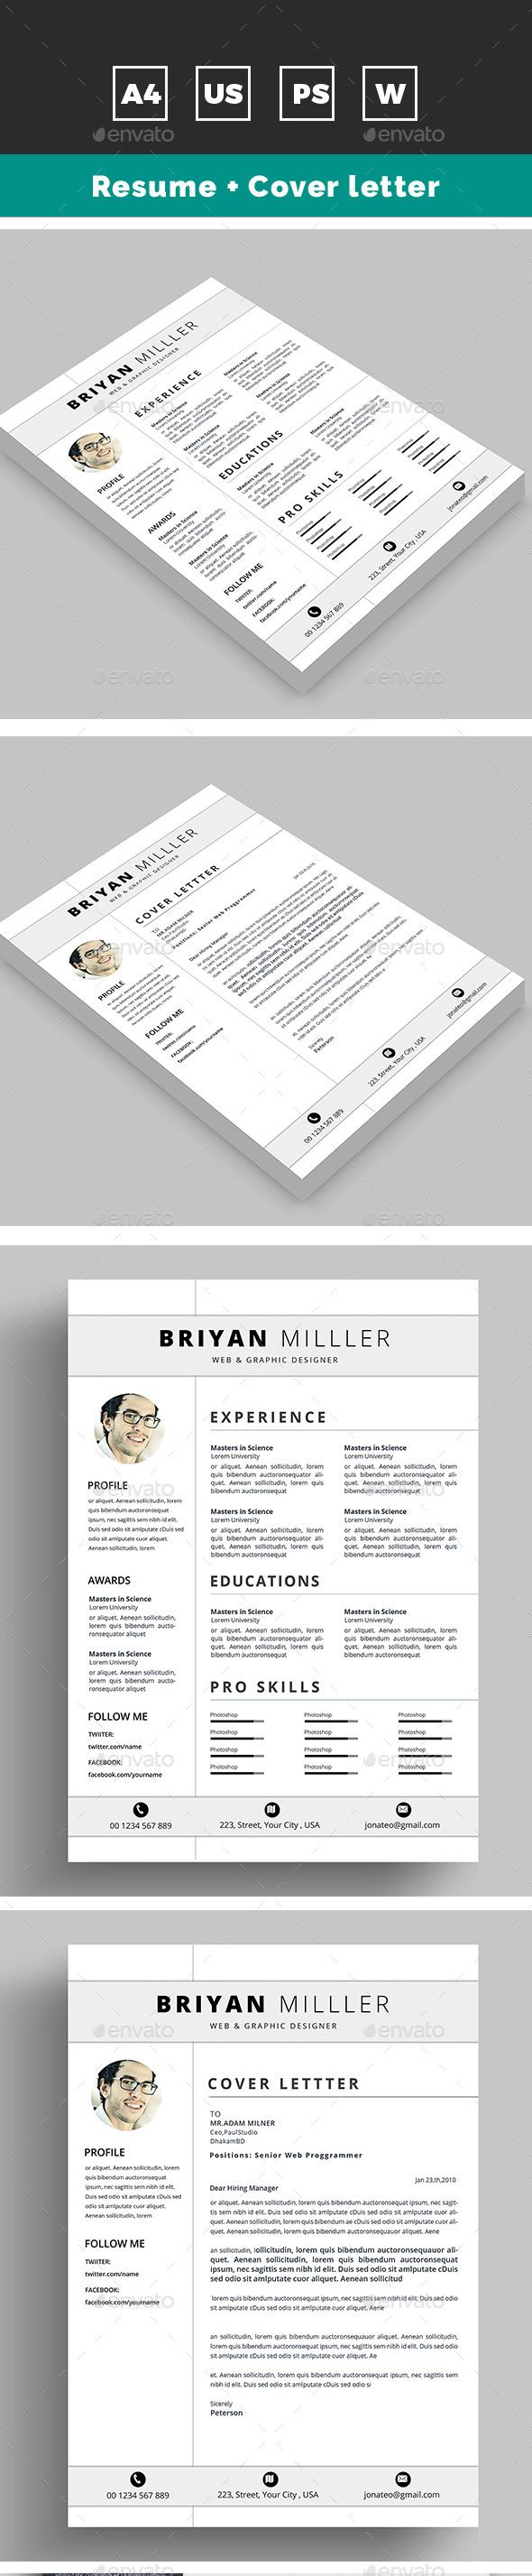 Best ResumeS Images On   Resume Resume